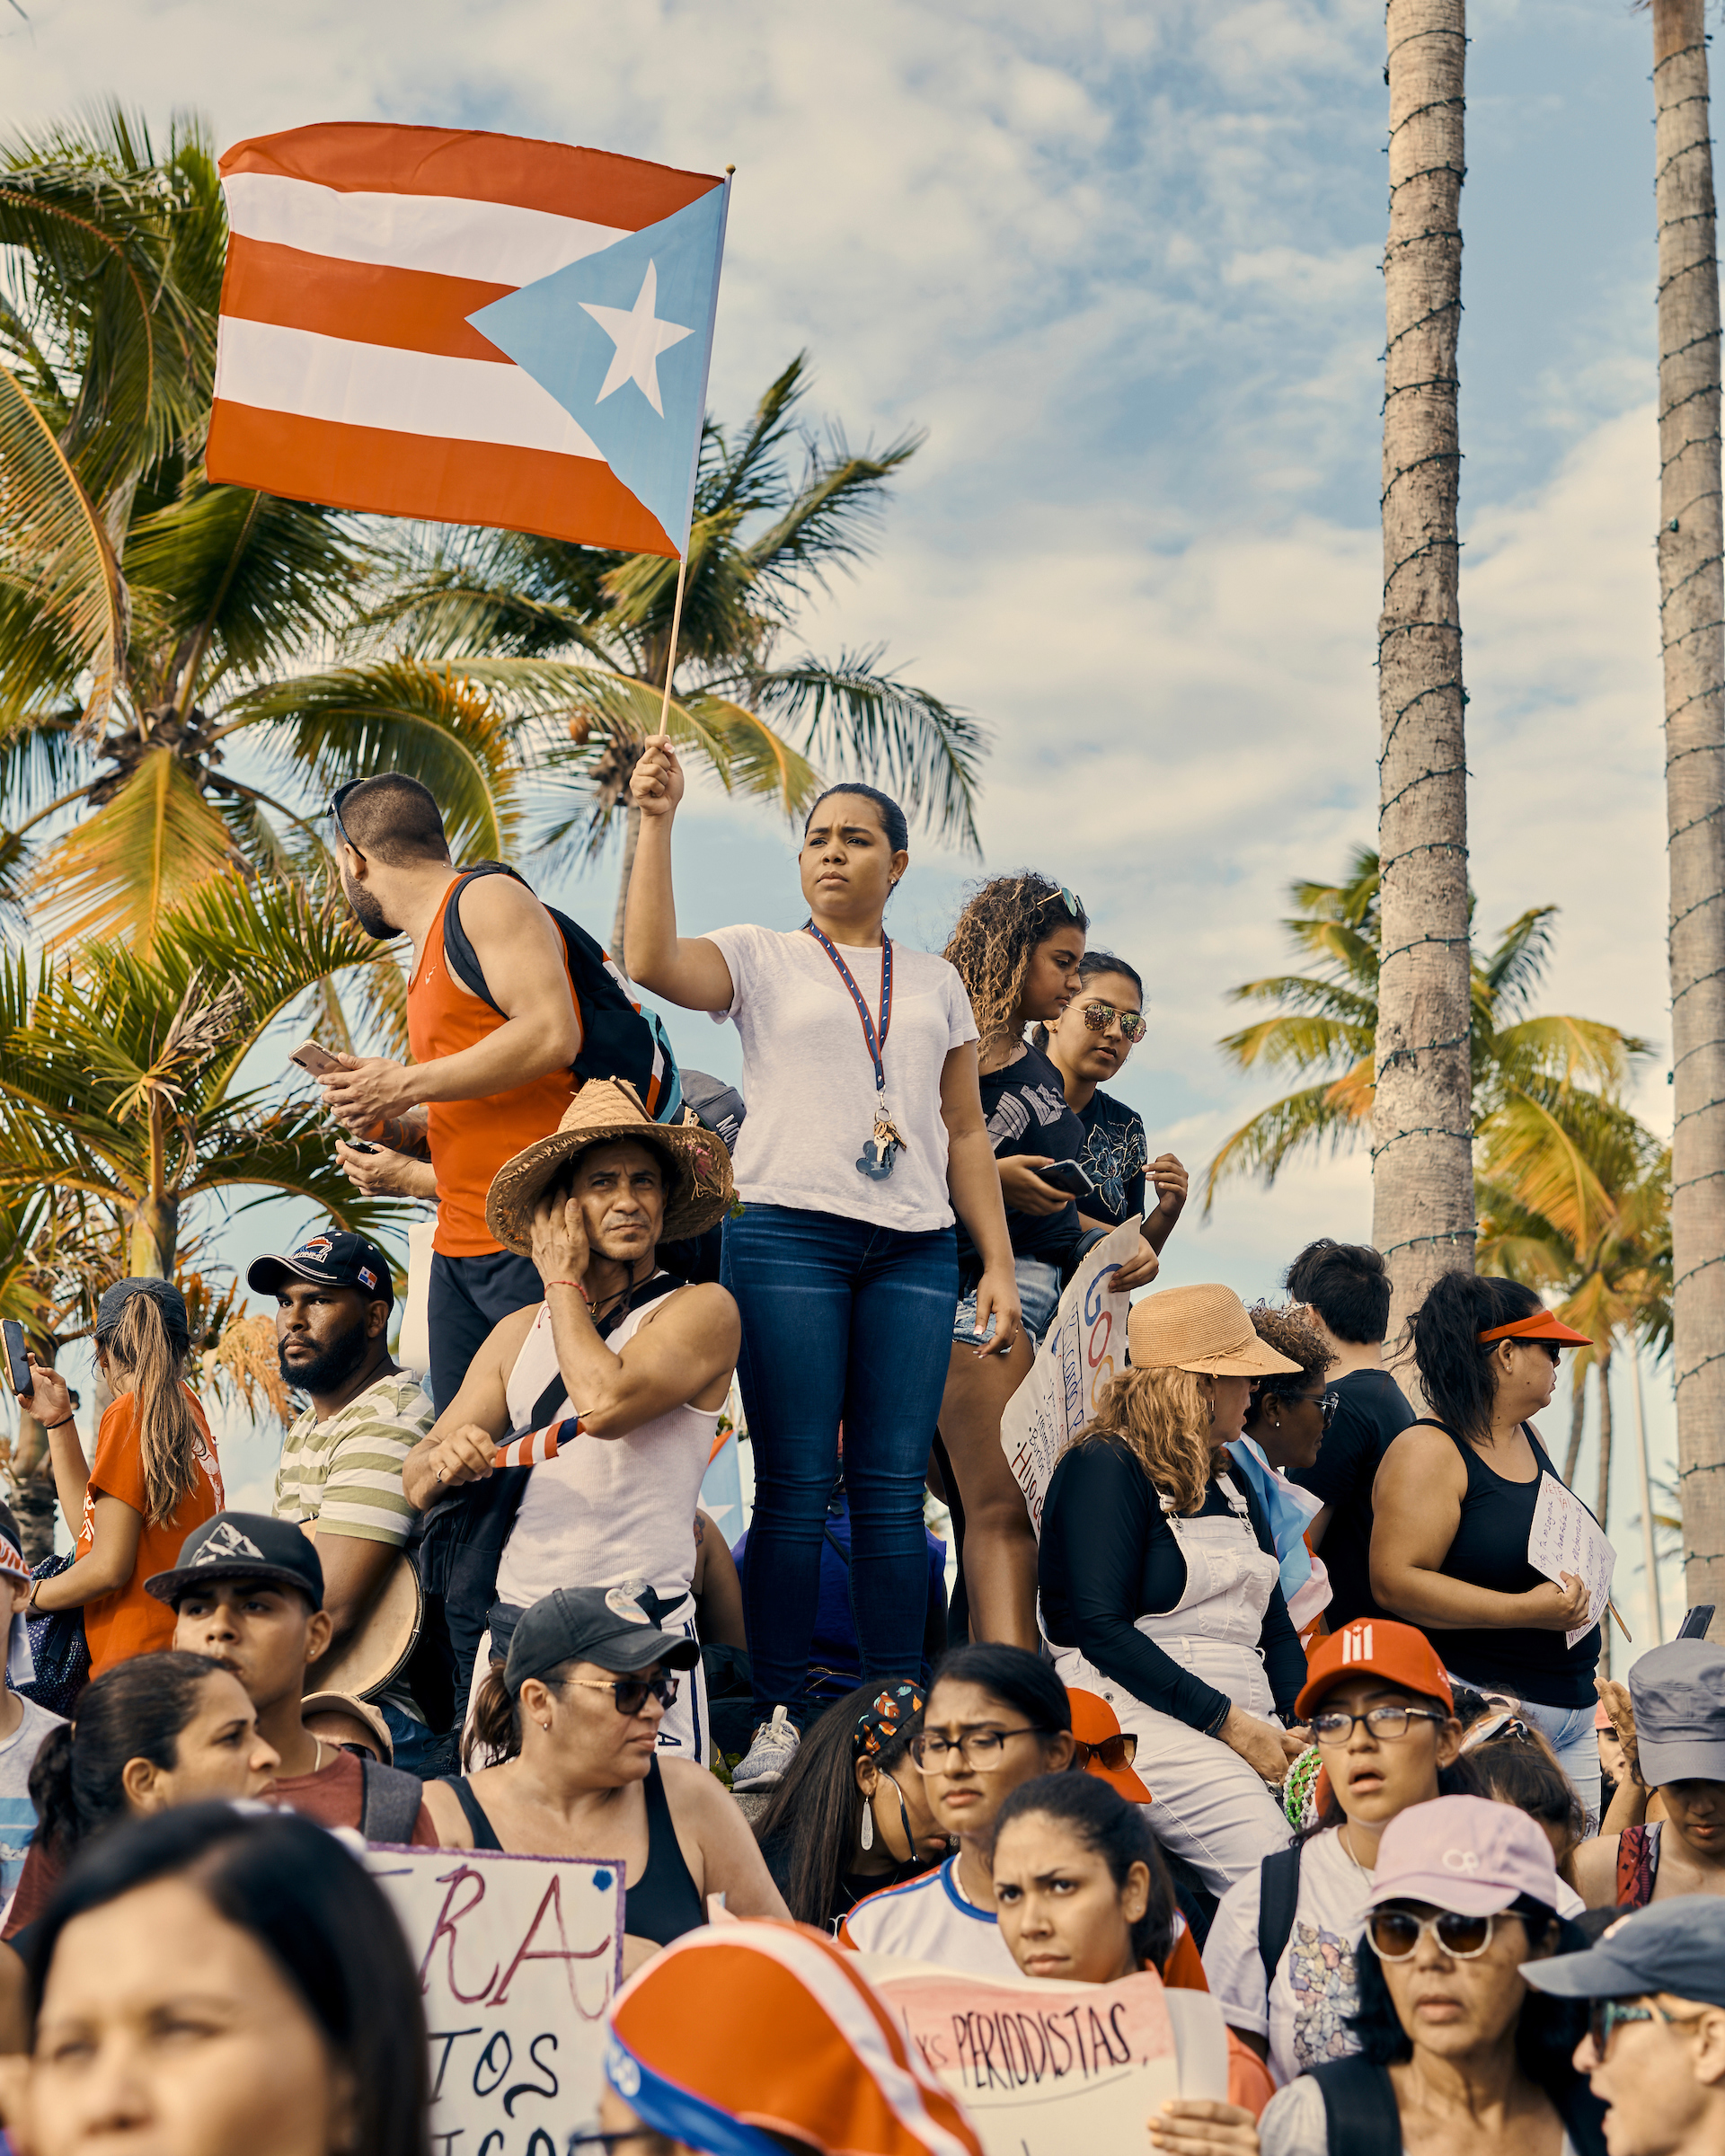 A woman waves a Puerto Rican flag at the anti-Rosselló protest in San Juan, Puerto Rico, on July 17, 2019.